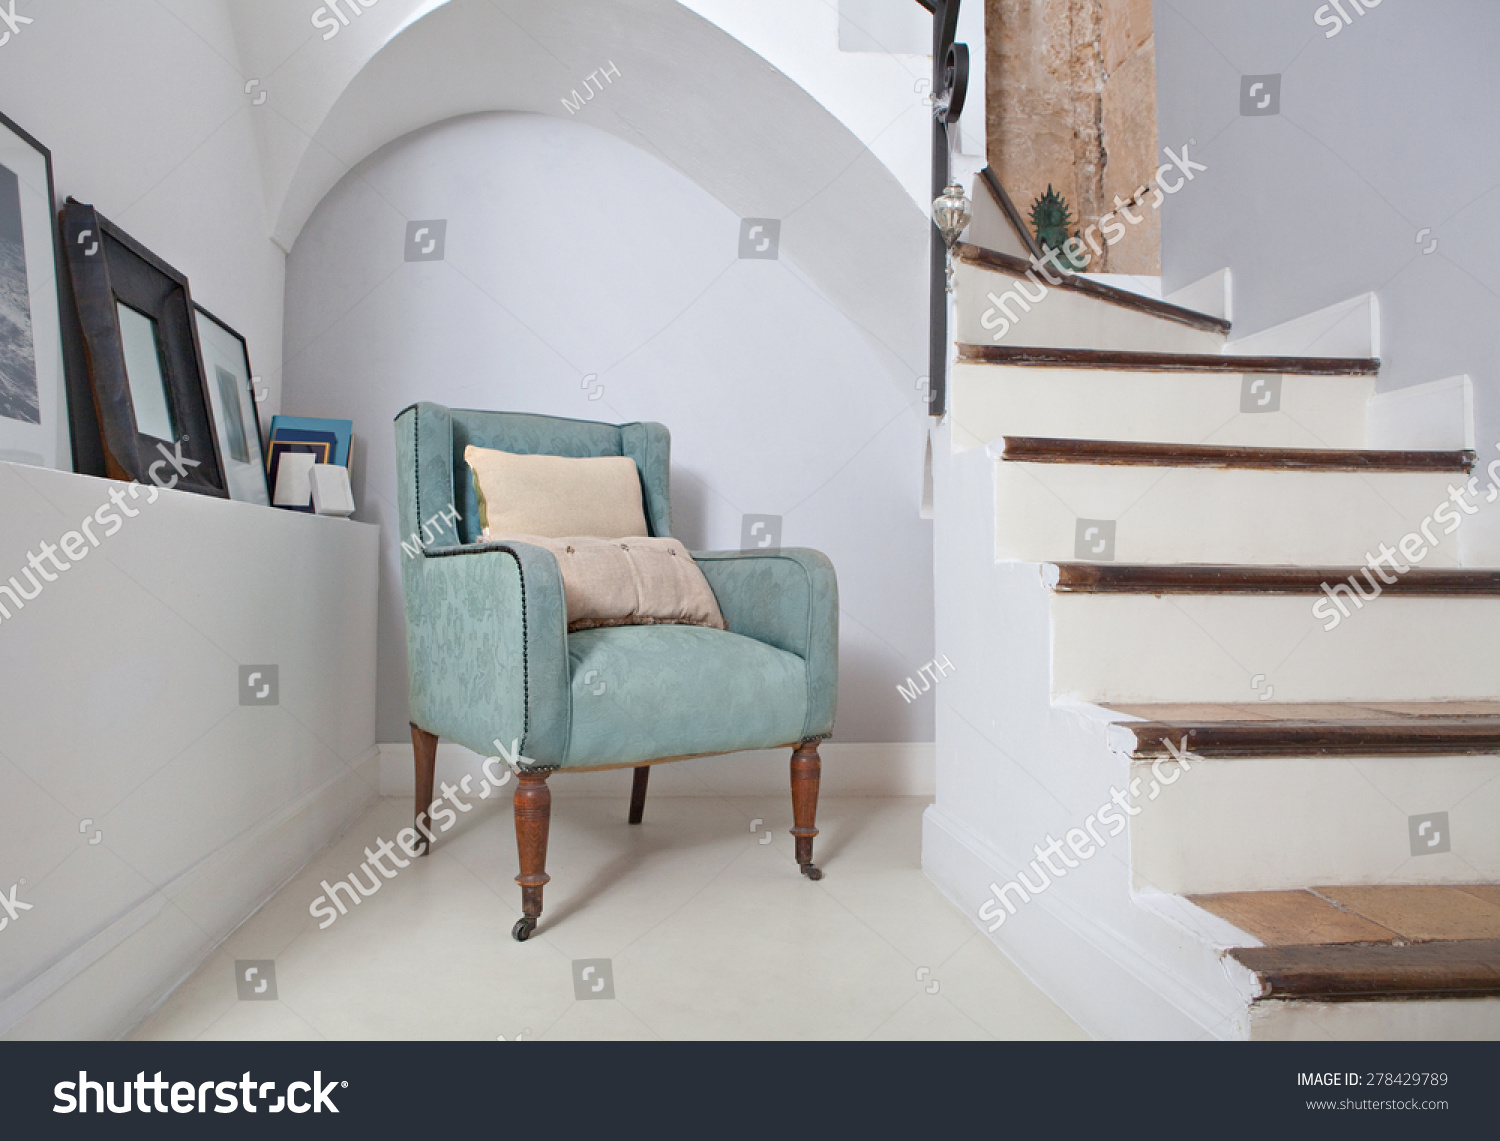 Arch And Next To Stone Walls And Stairs Indoors Reading Room With